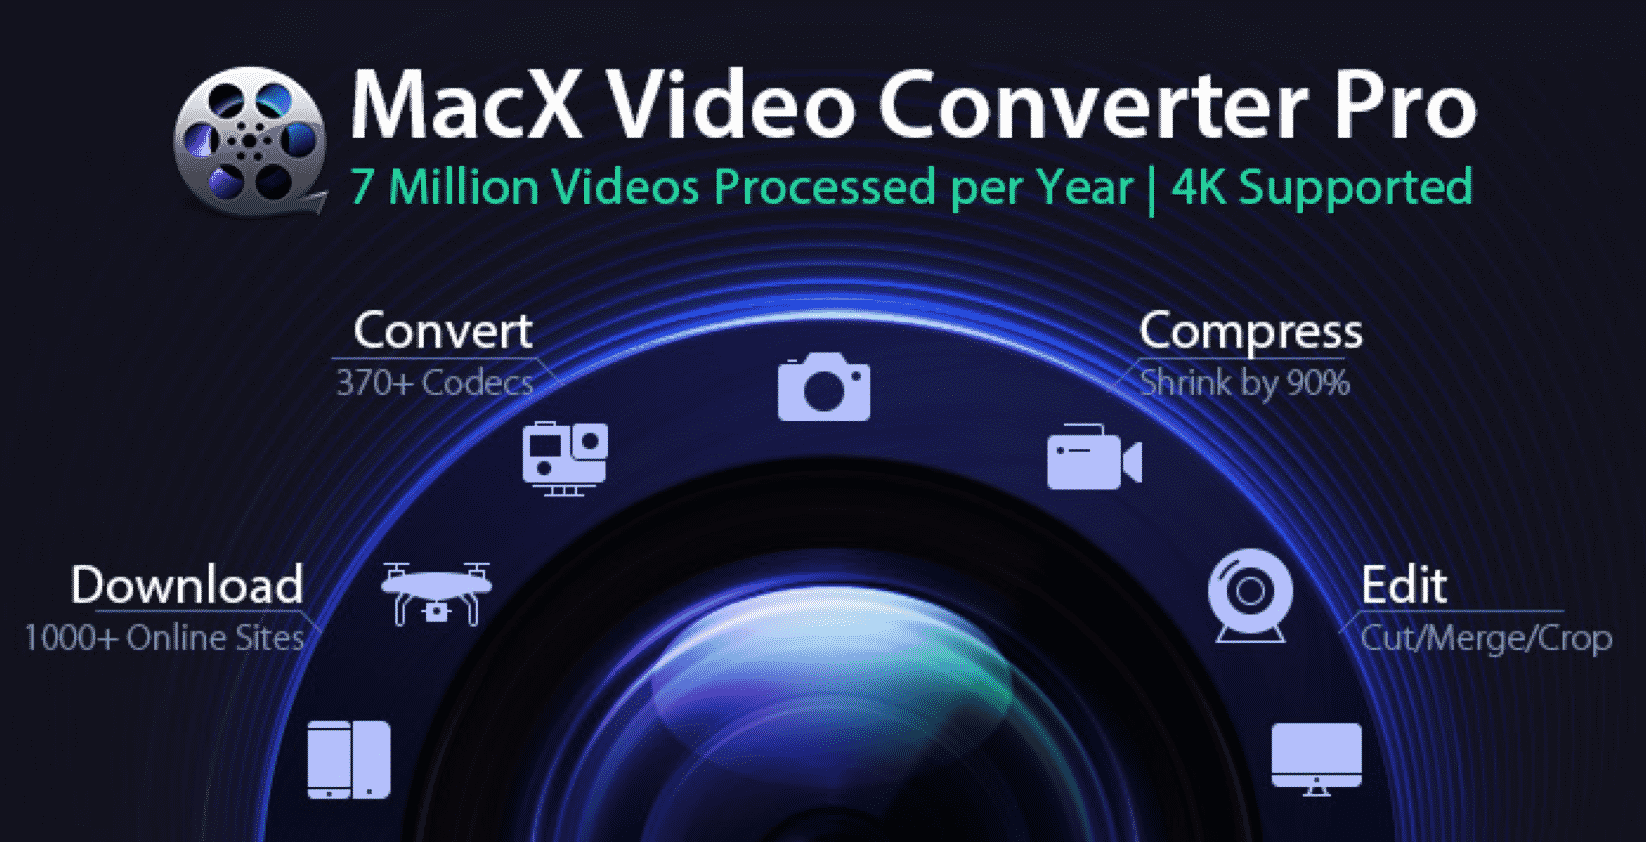 MacX Video Converter Pro - Comprehensive 4K/HD Video Solution to Convert/Resize/Download Videos